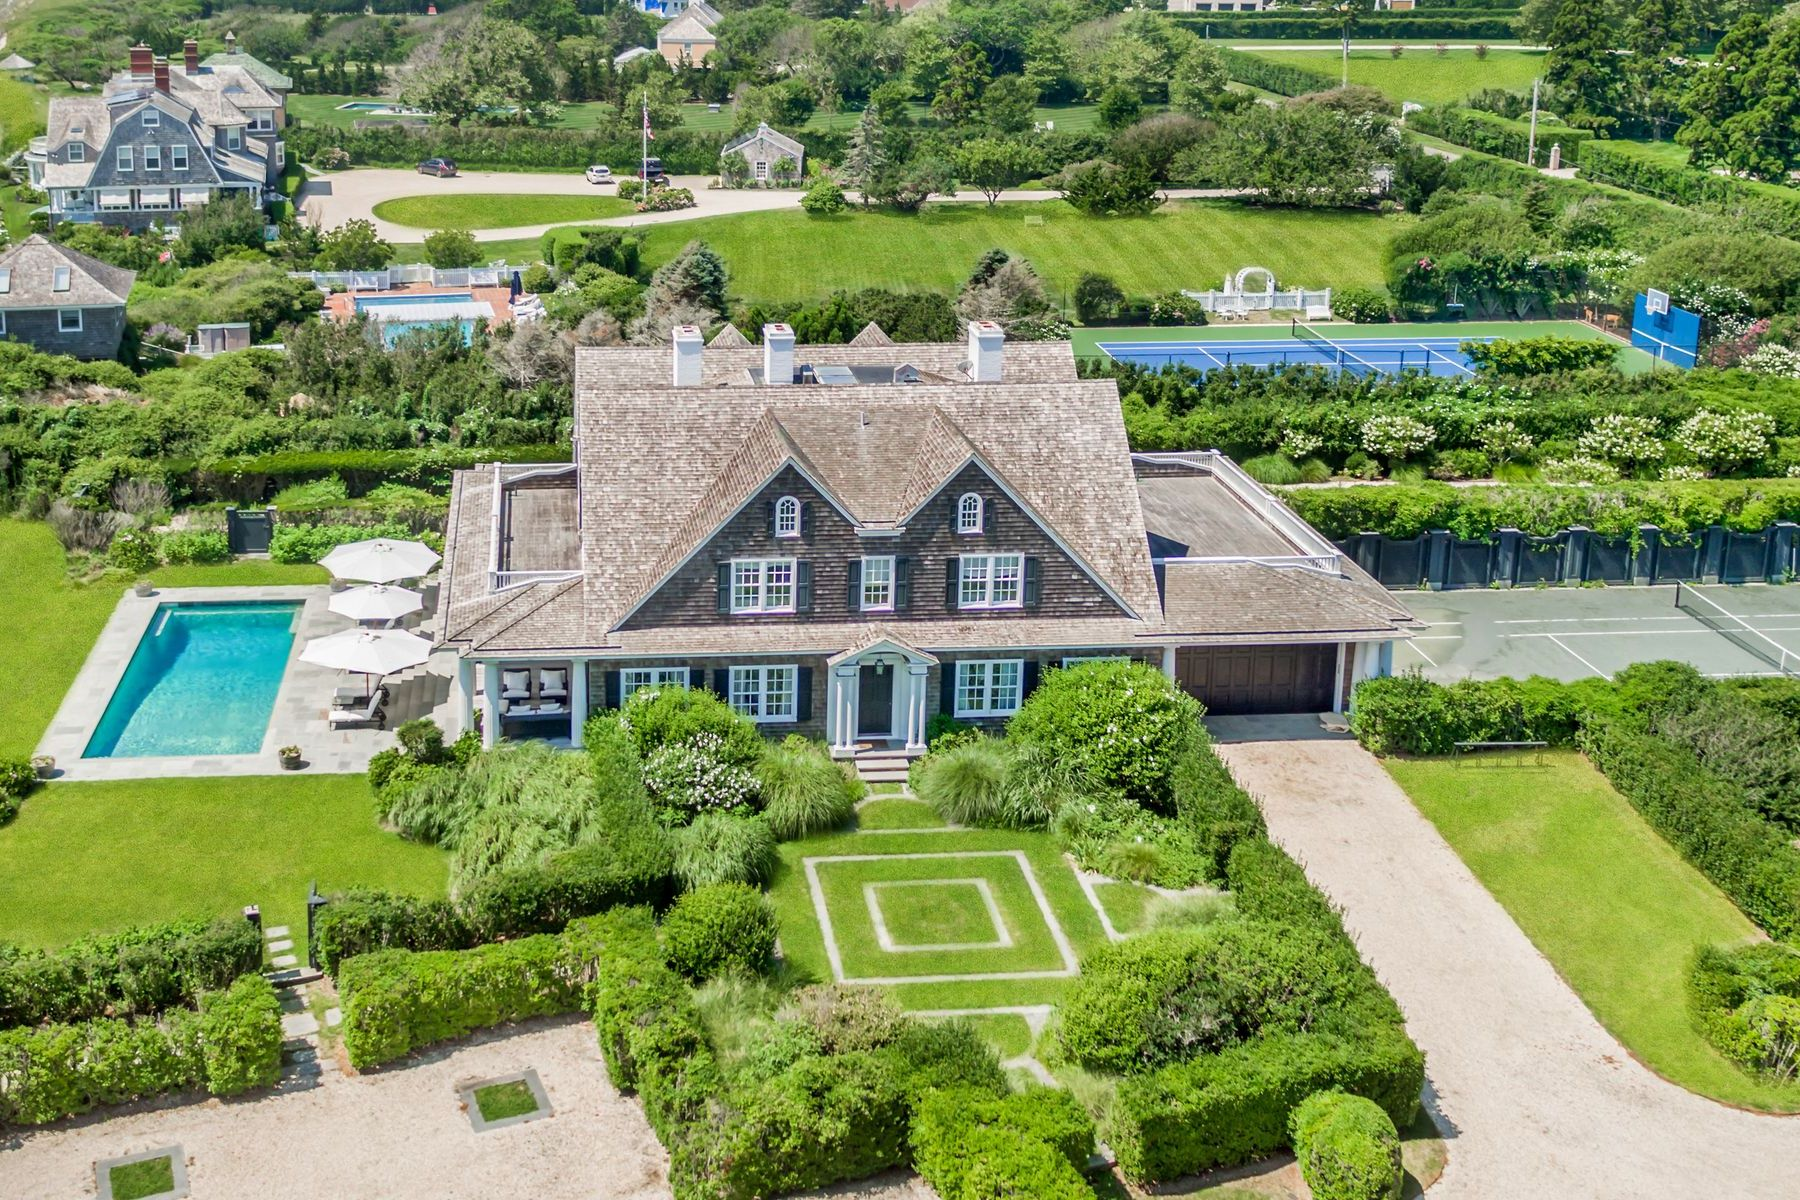 Additional photo for property listing at 366 & 376 Gin Lane, Southampton 366 & 376 Gin Lane Southampton, New York 11968 United States